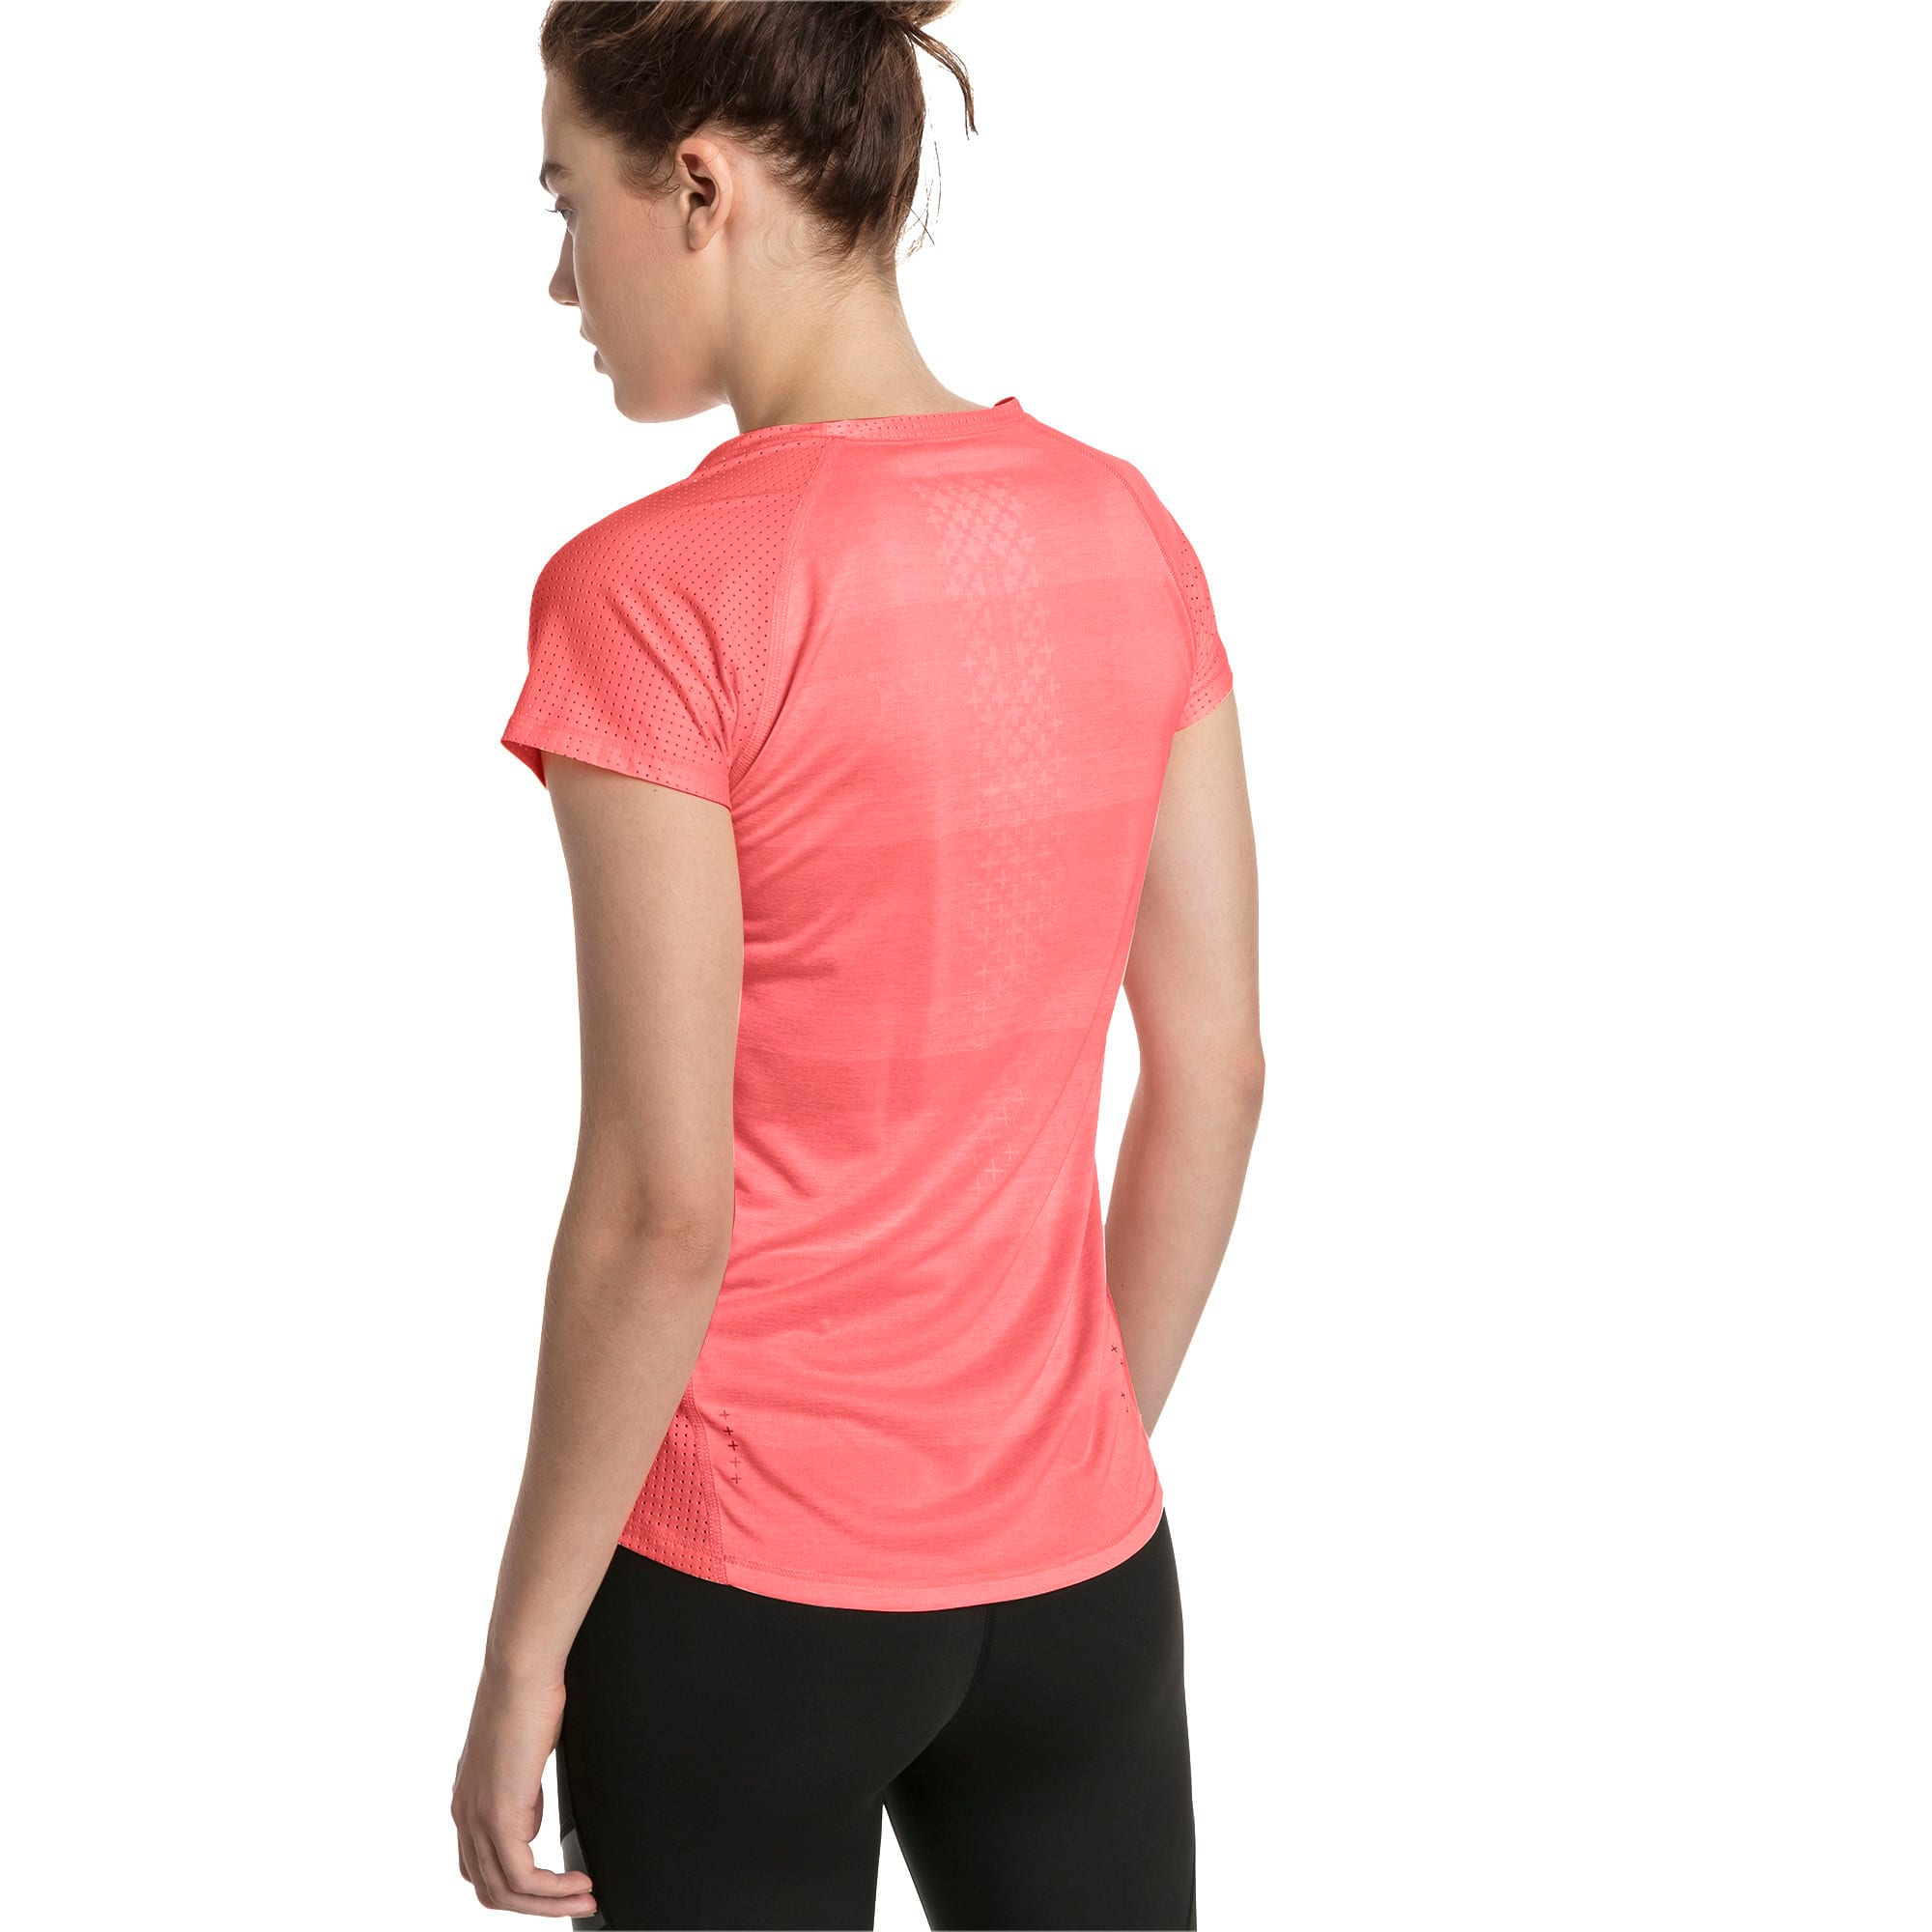 Thumbnail 2 of Thermo R+ Damen Running T-Shirt, Bright Peach Heather, medium